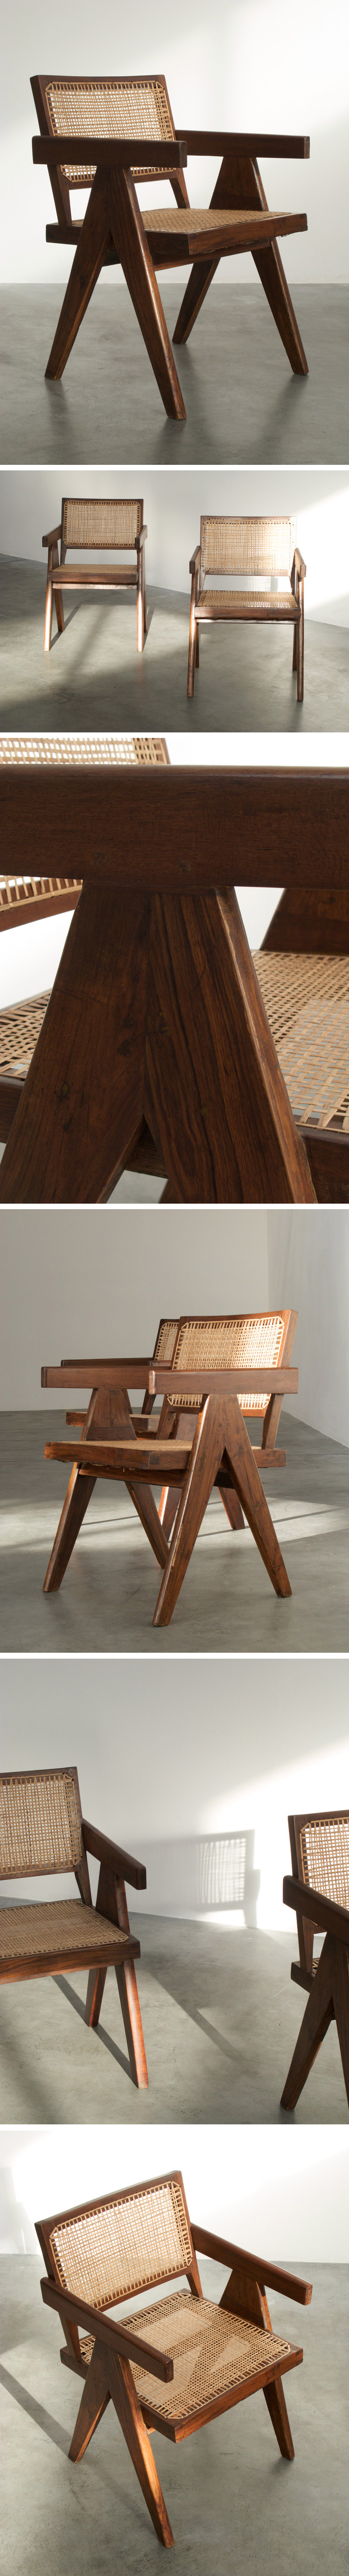 Pierre Jeanneret Armchair Chandigarh India Large